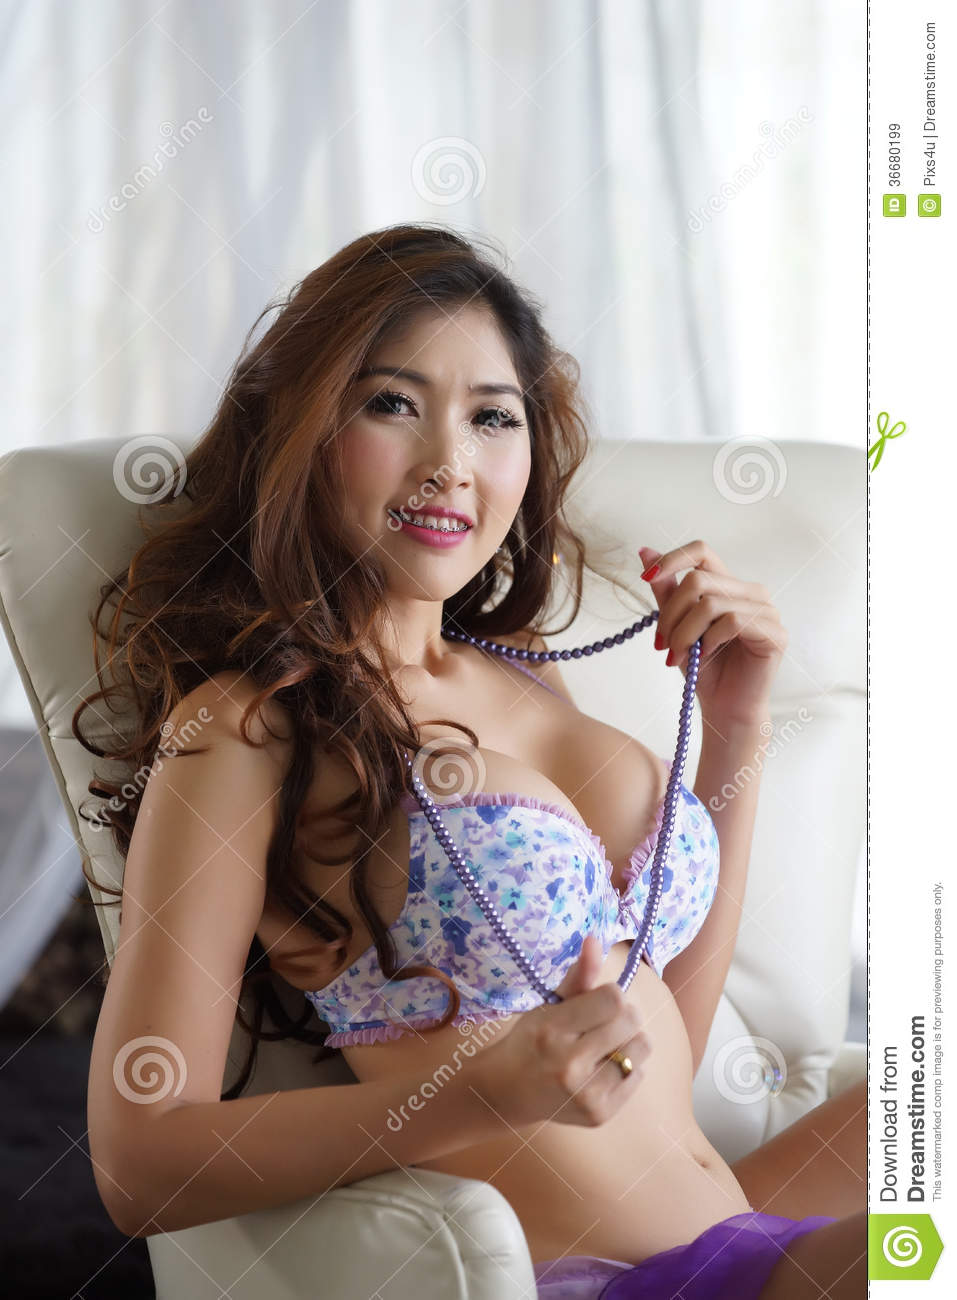 Young Woman In Lingerie Stock Image Image Of Bedroom